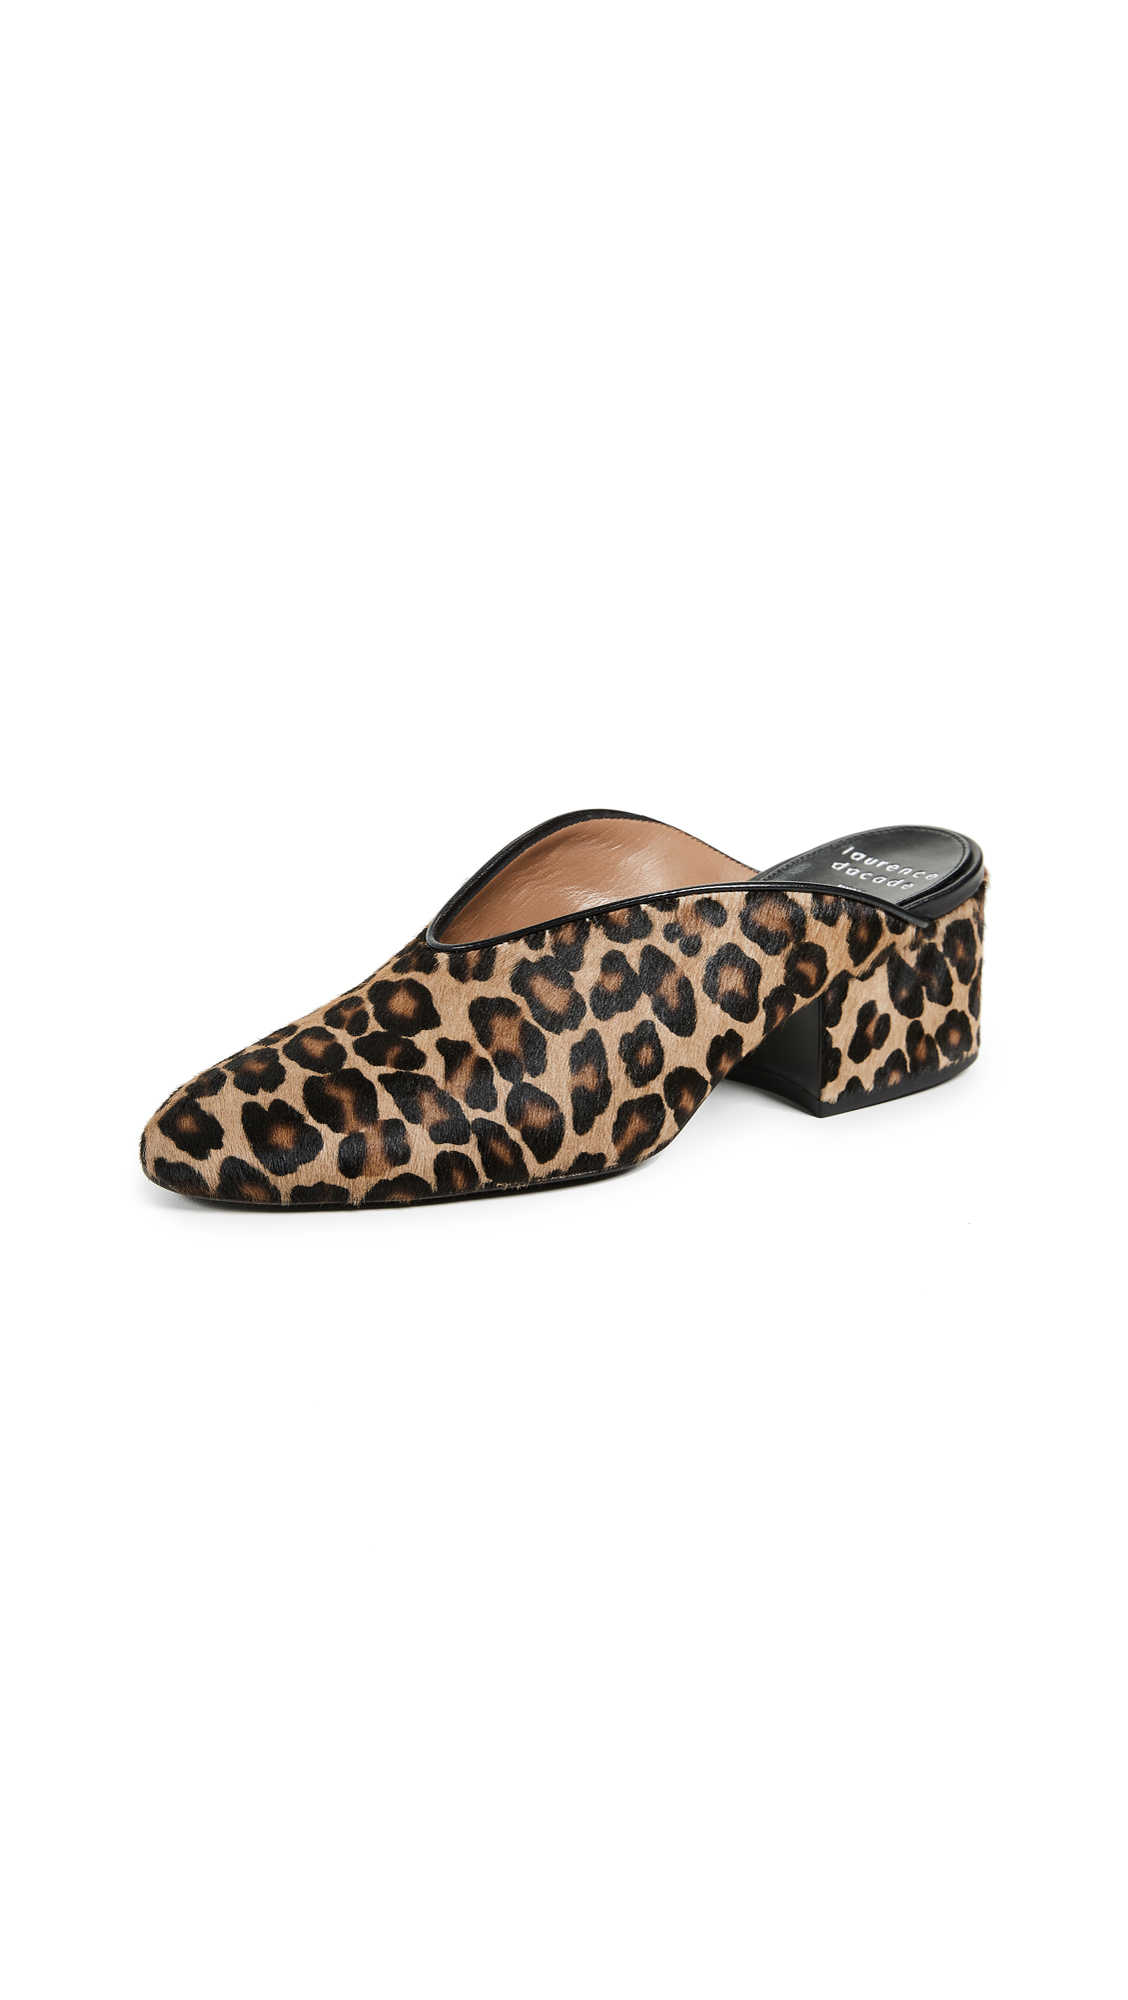 Laurence Dacade Rissy Mules - Black